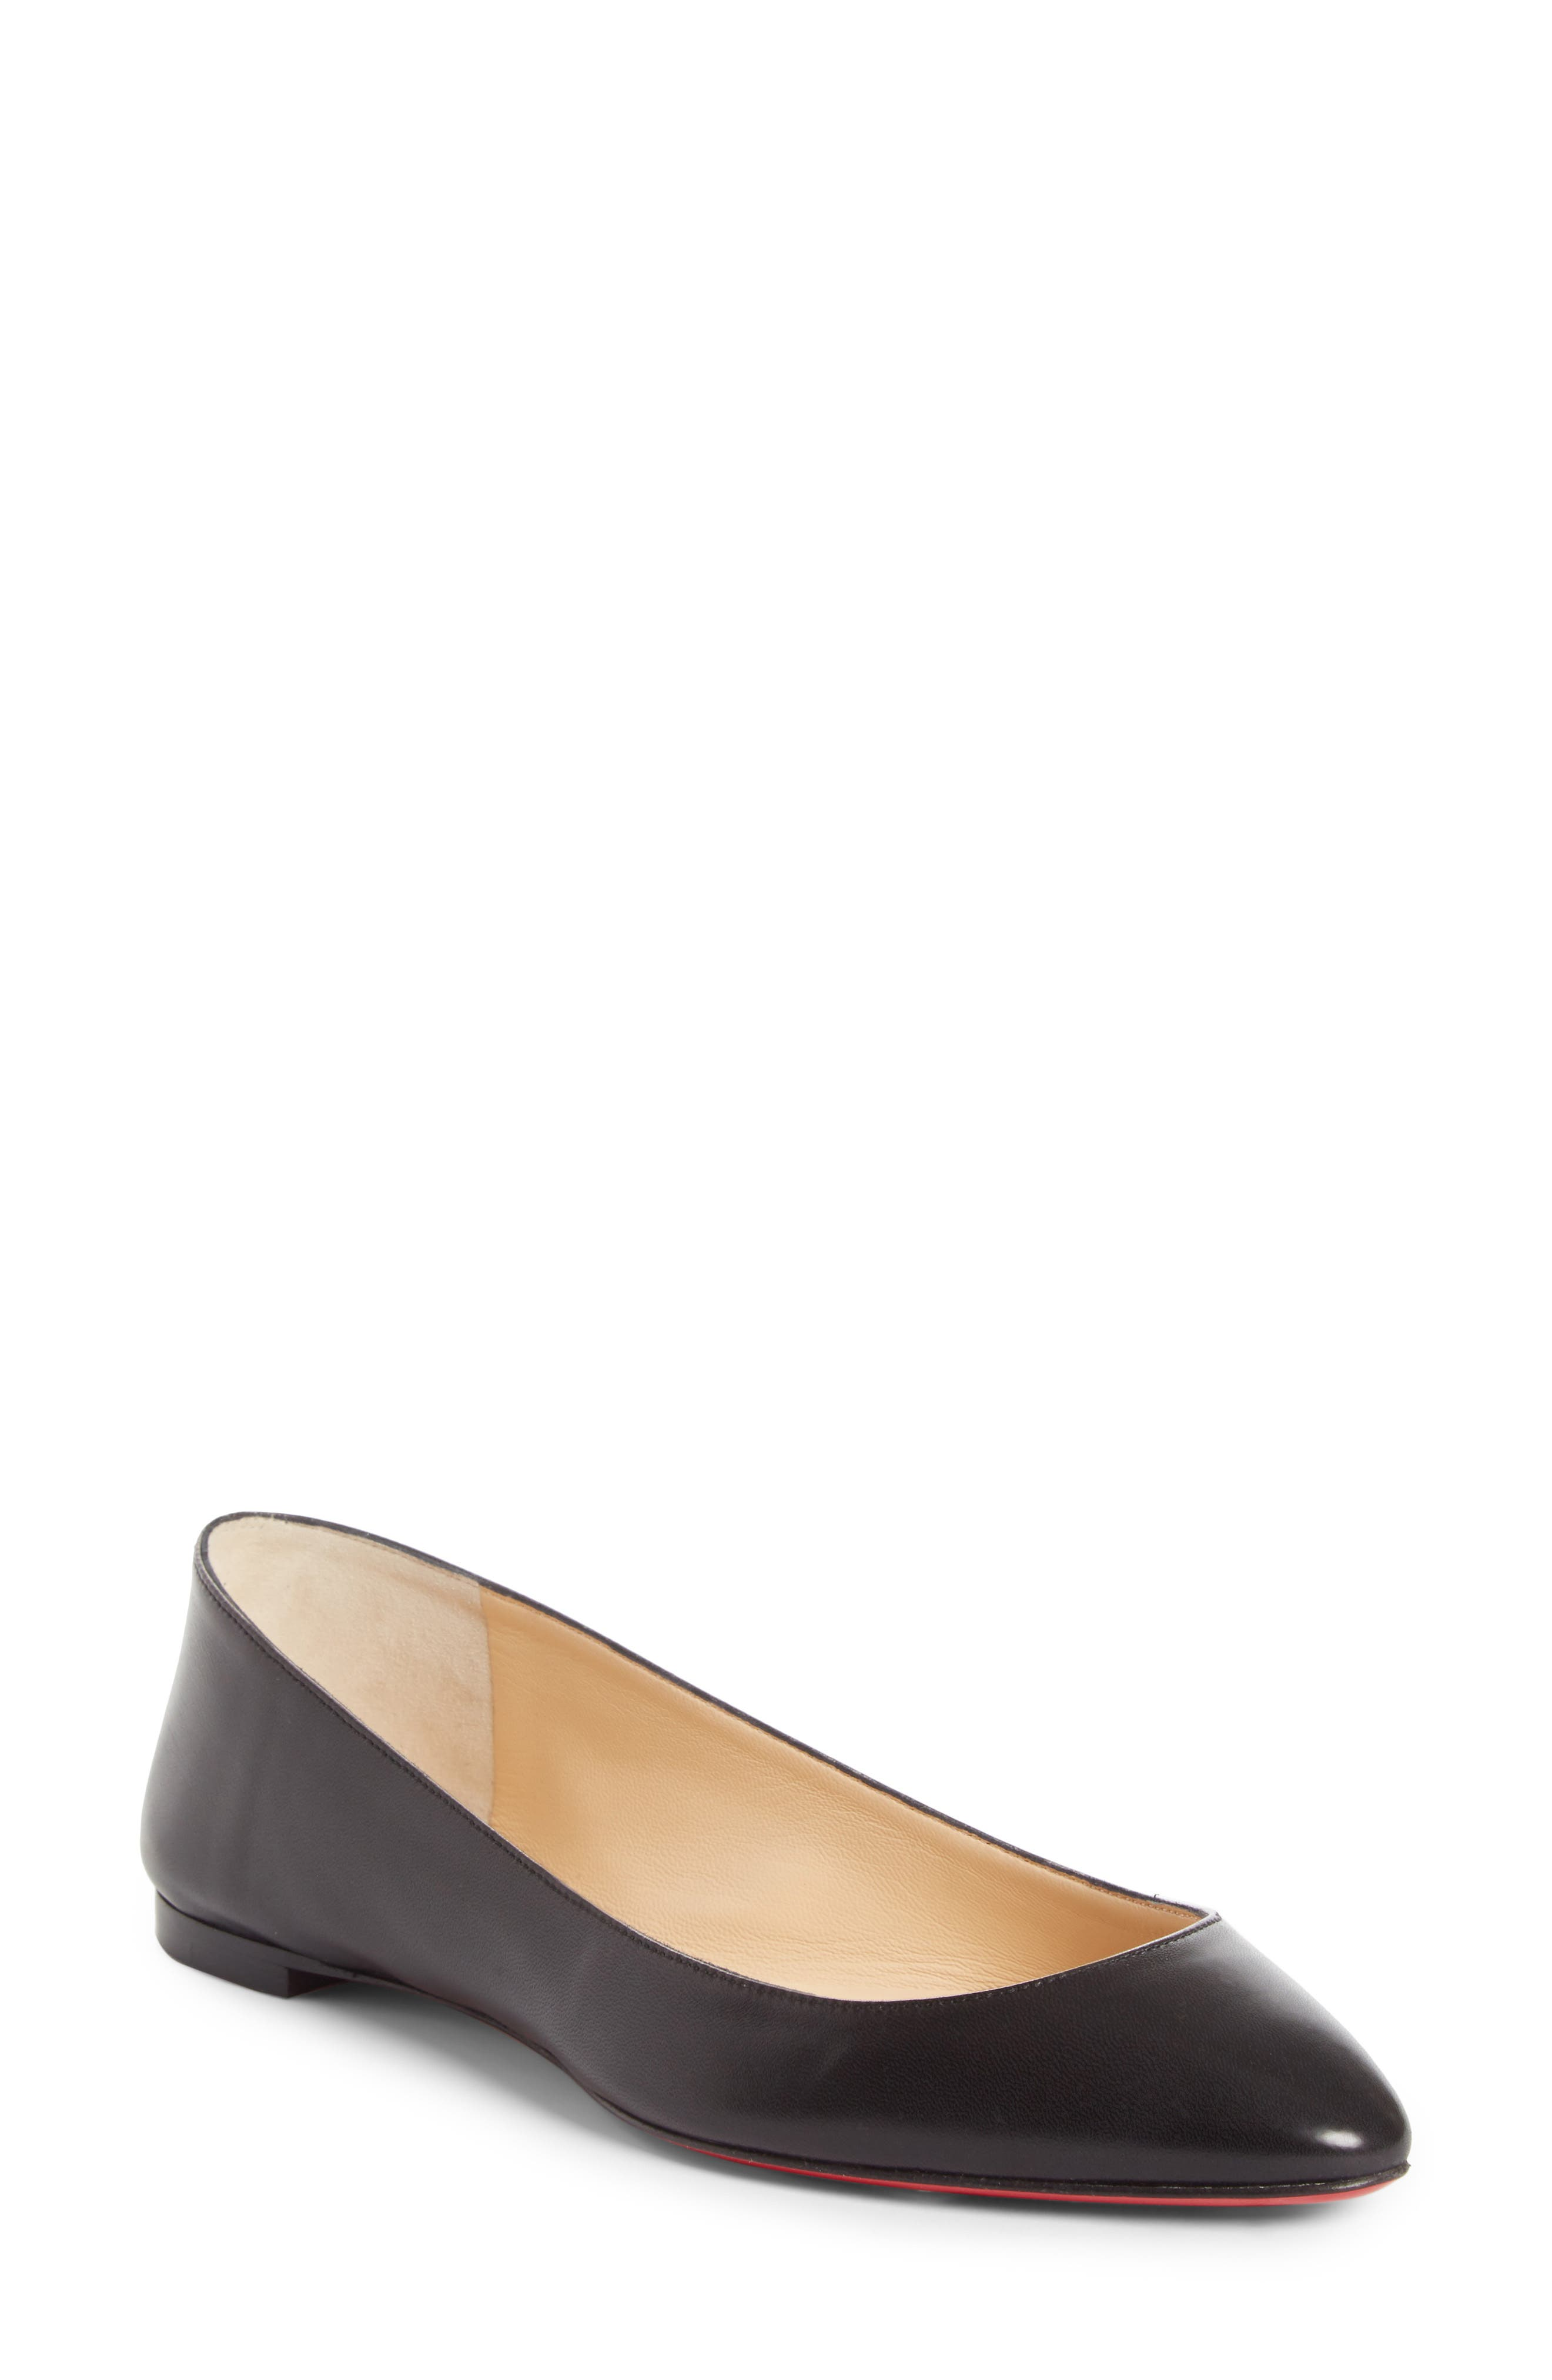 Eloise Flat,                             Main thumbnail 1, color,                             BLACK LEATHER